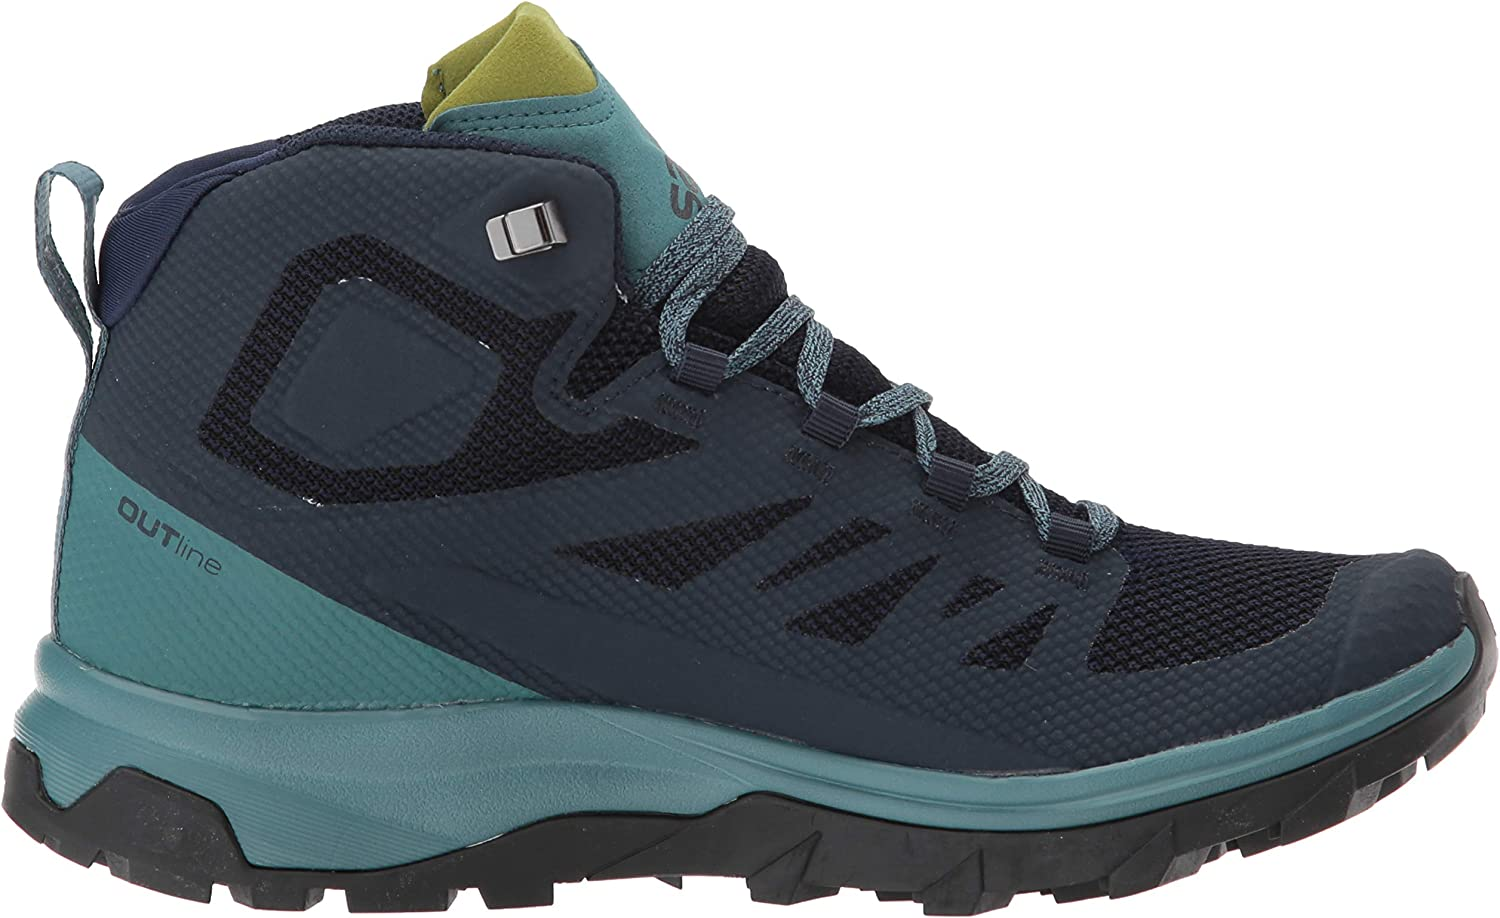 SALOMON Shoes Outline Mid GTX W Navy BlazeHydr, Chaussures